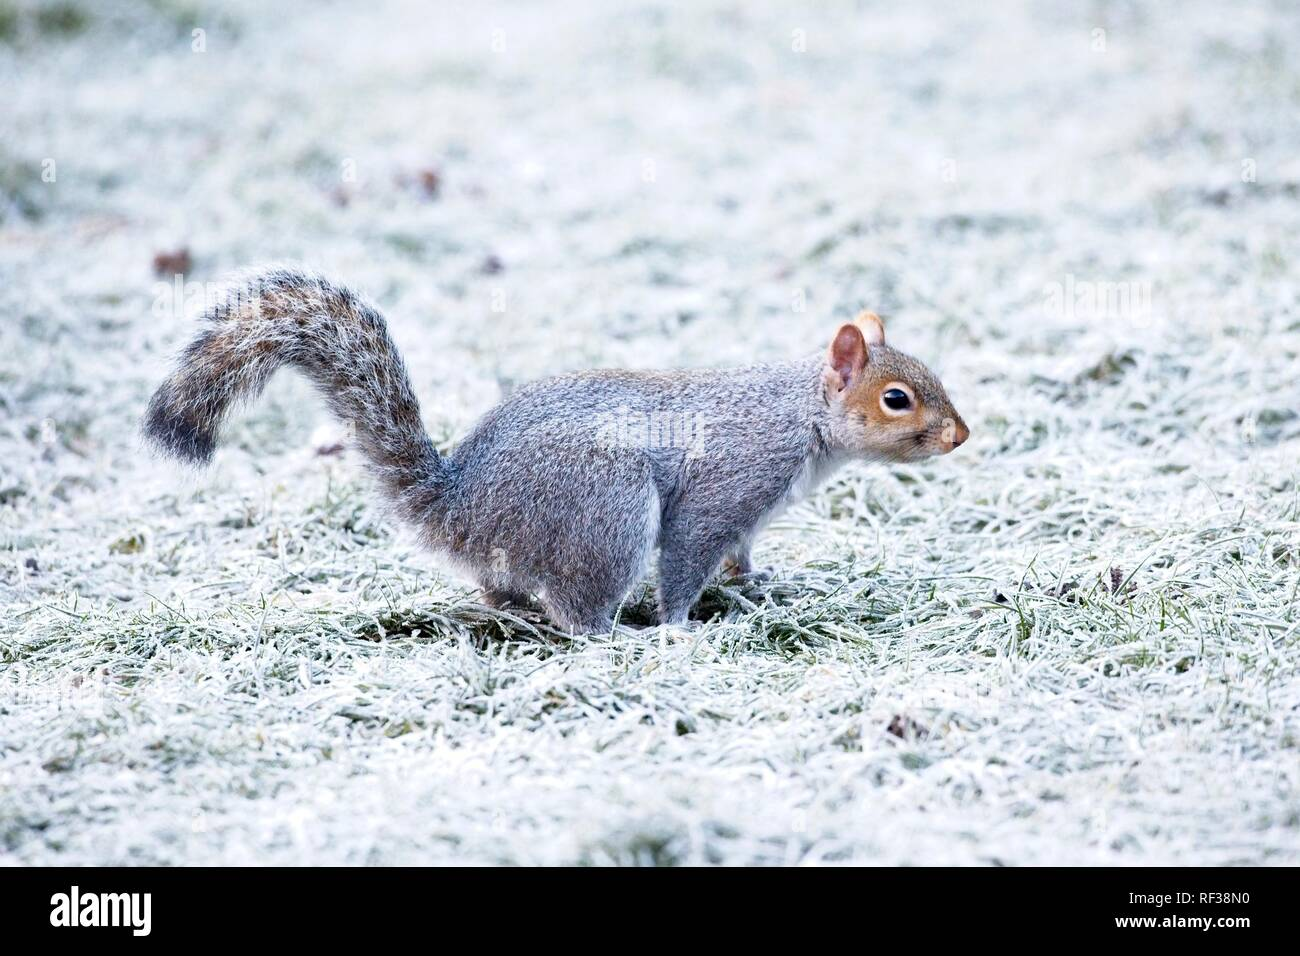 Hailsham, UK. 24th Jan 2019.UK weather.A Grey squirrel (Sciurus carolinensis) scavenges for food this morning after a cold night in Sussex. Wildlife will struggle to find food as the cold weather worsens this week. Hailsham, East Sussex, UK. Credit: Ed Brown/Alamy Live News - Stock Image